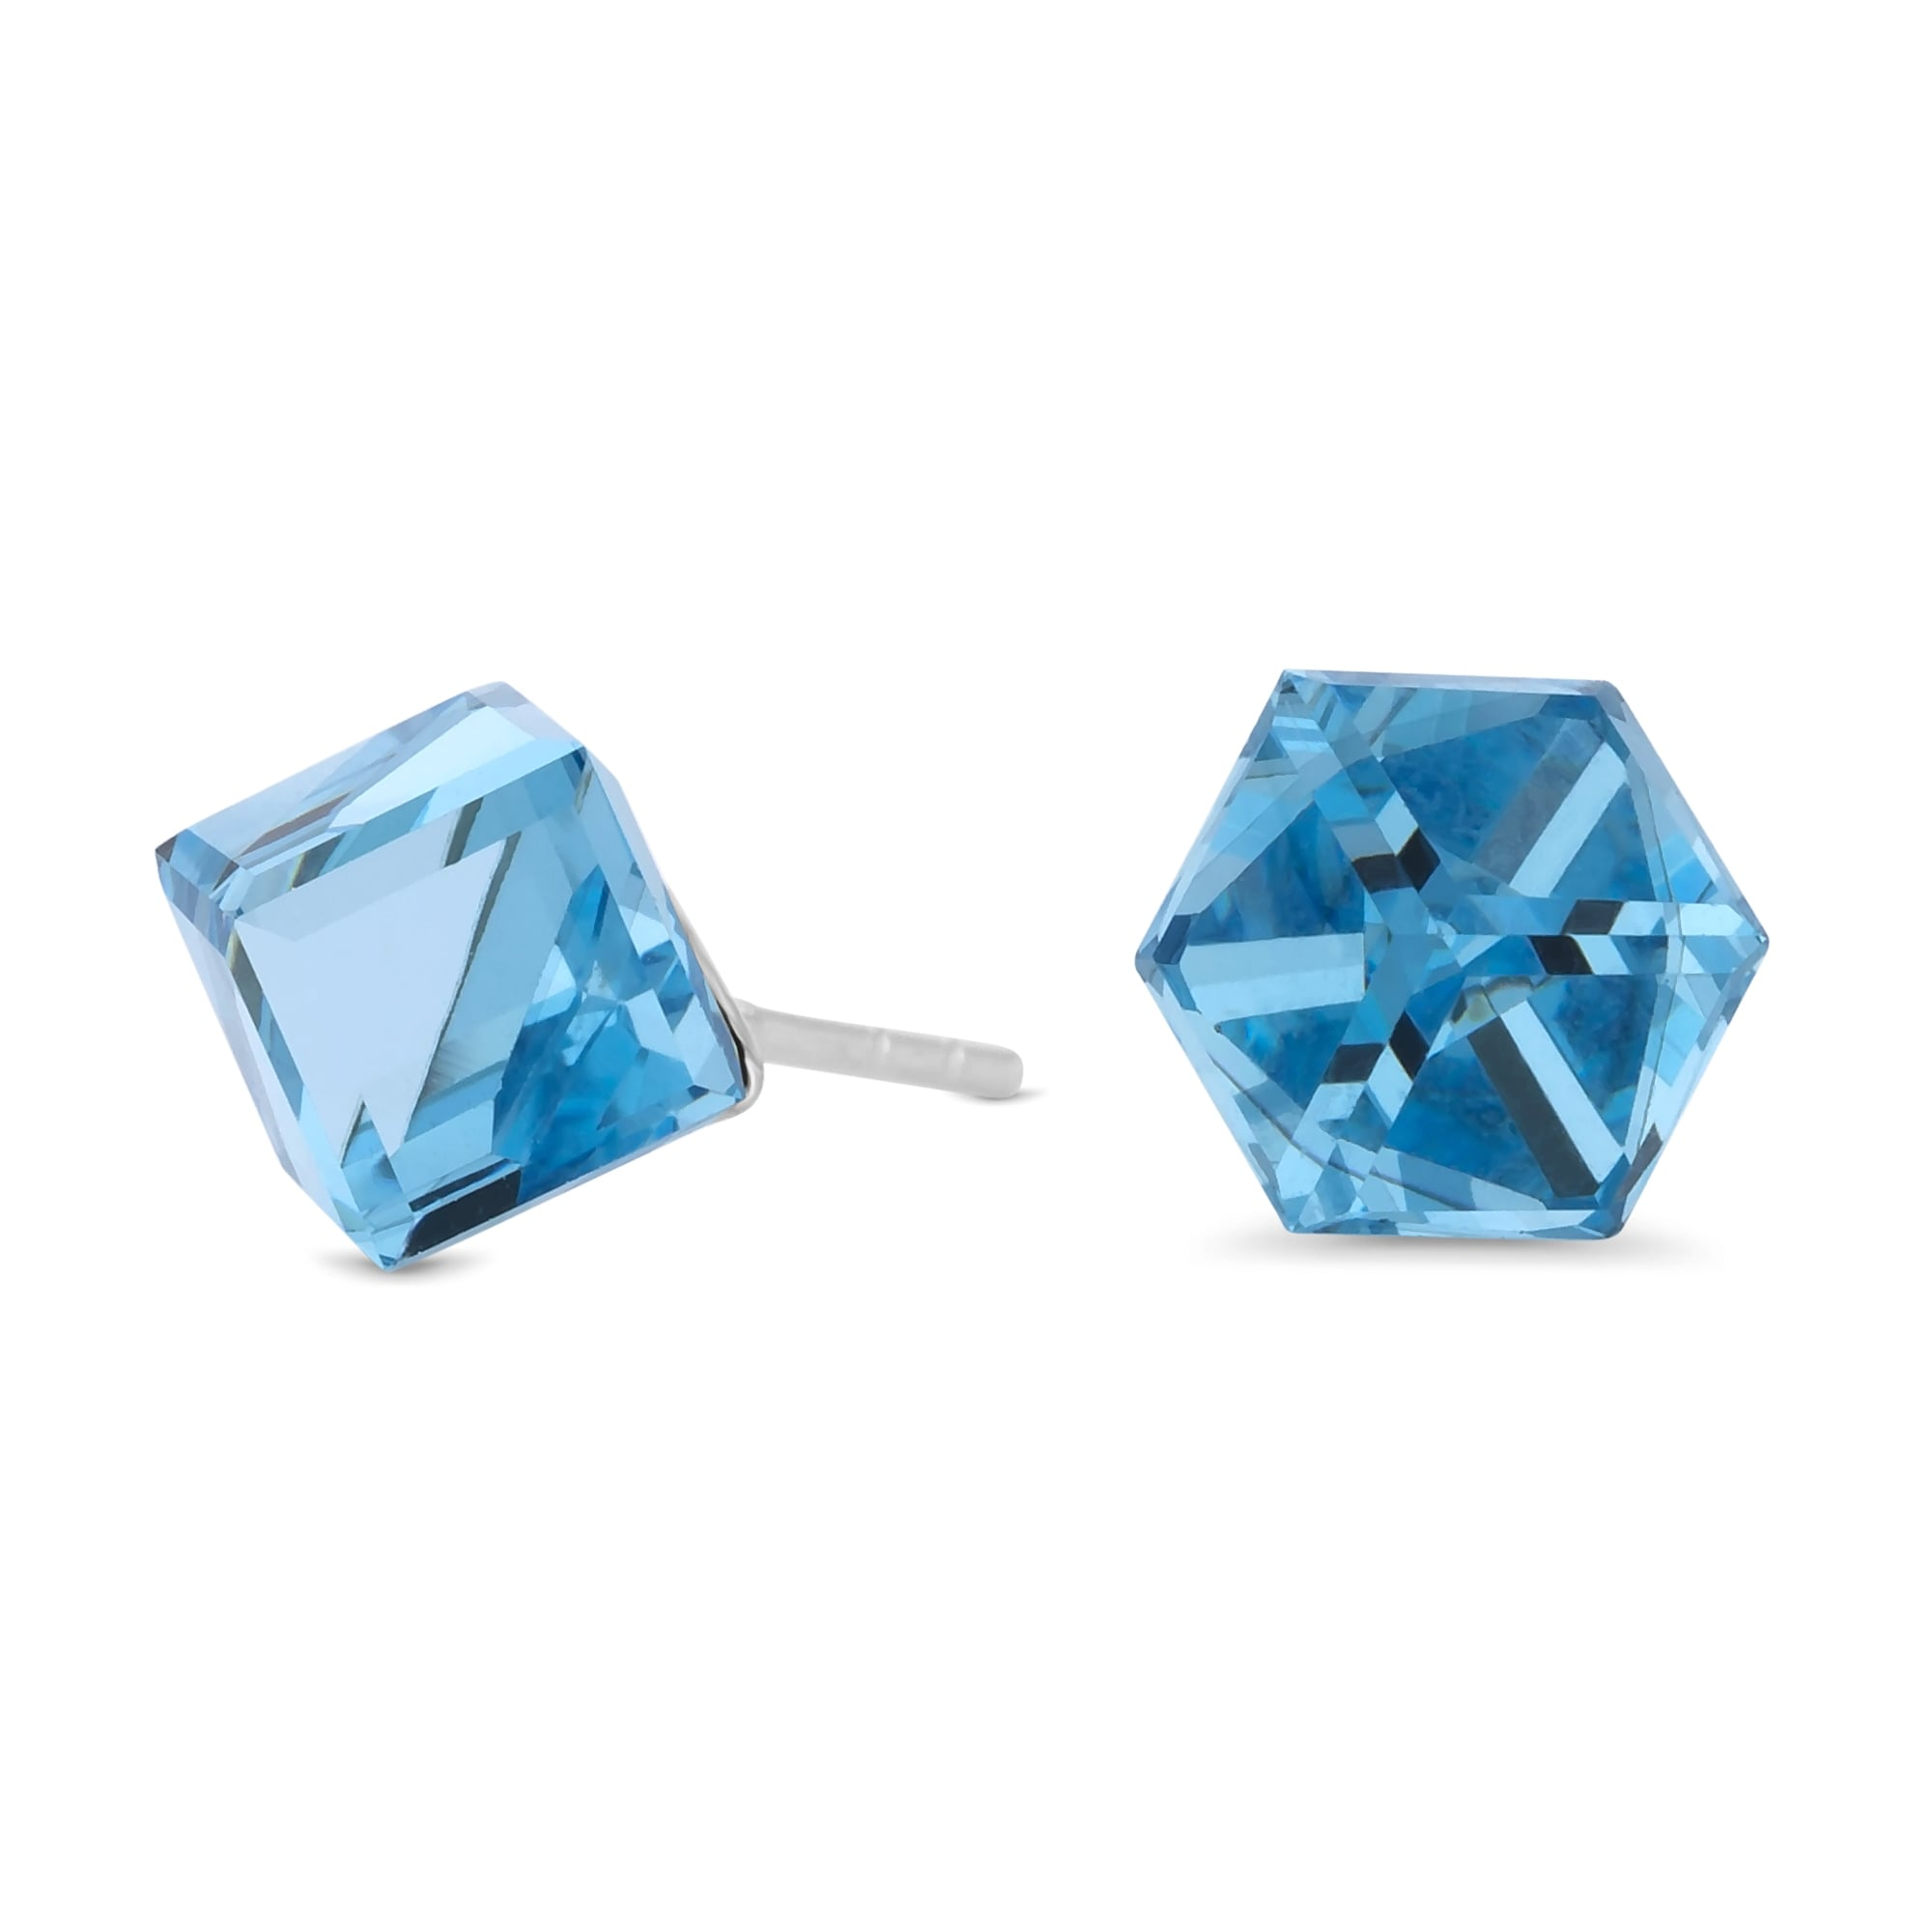 Sterling Silver 925 Blue Cube Stud Earring Embellished With Swarovski Crystals